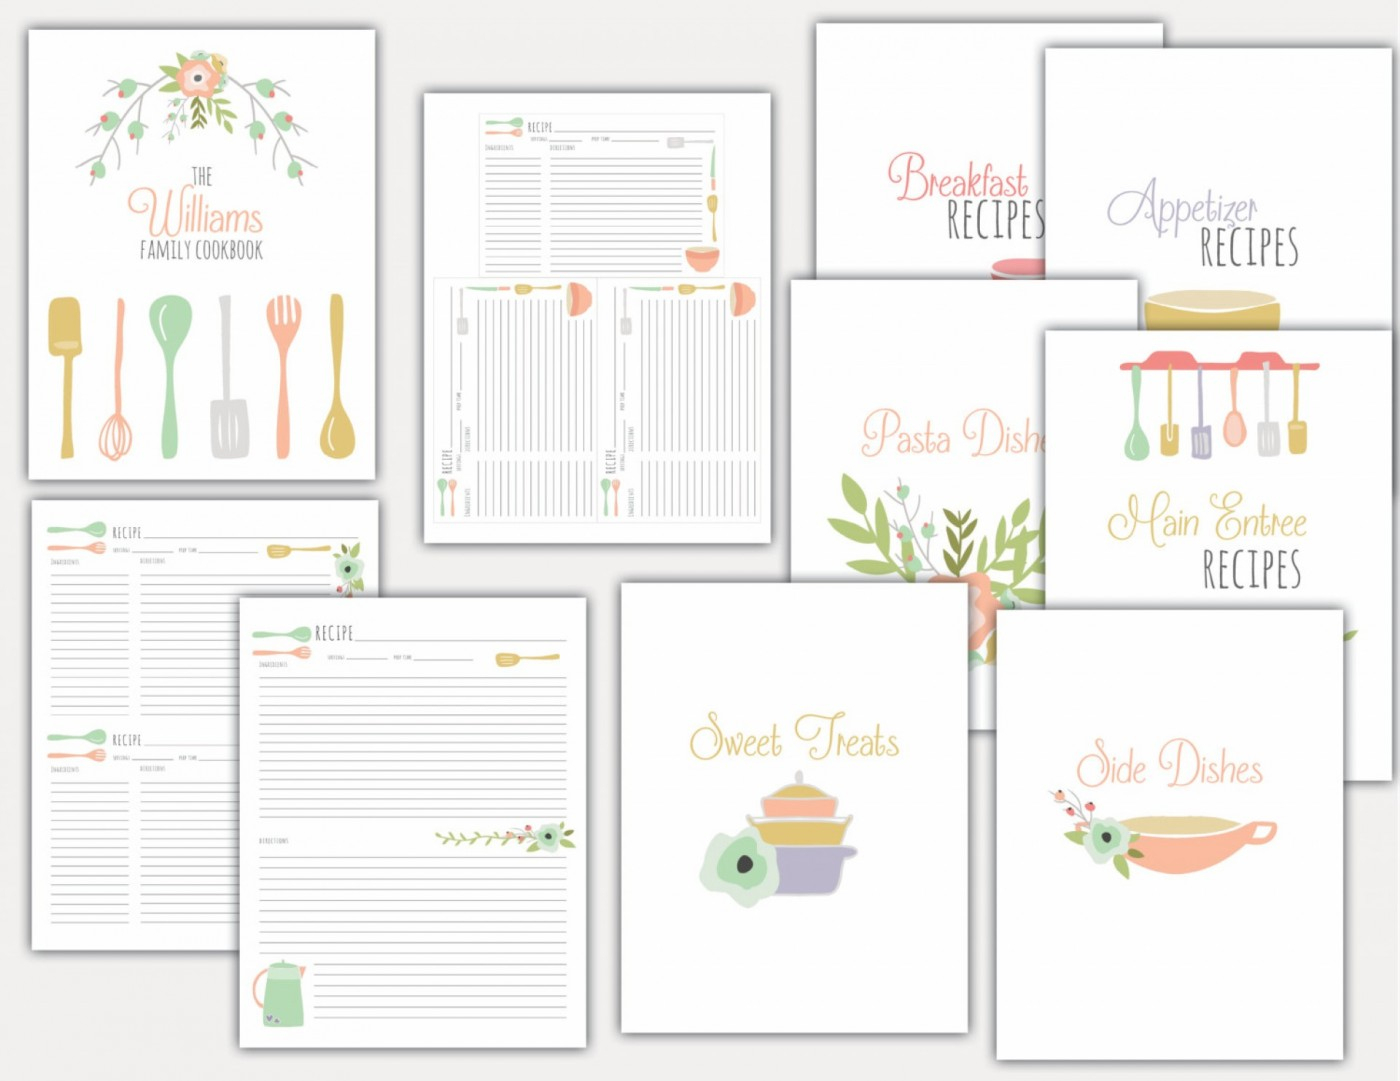 001 Free Printable Recipe Templates Template ~ Ulyssesroom - Free Printable Recipe Binder Templates